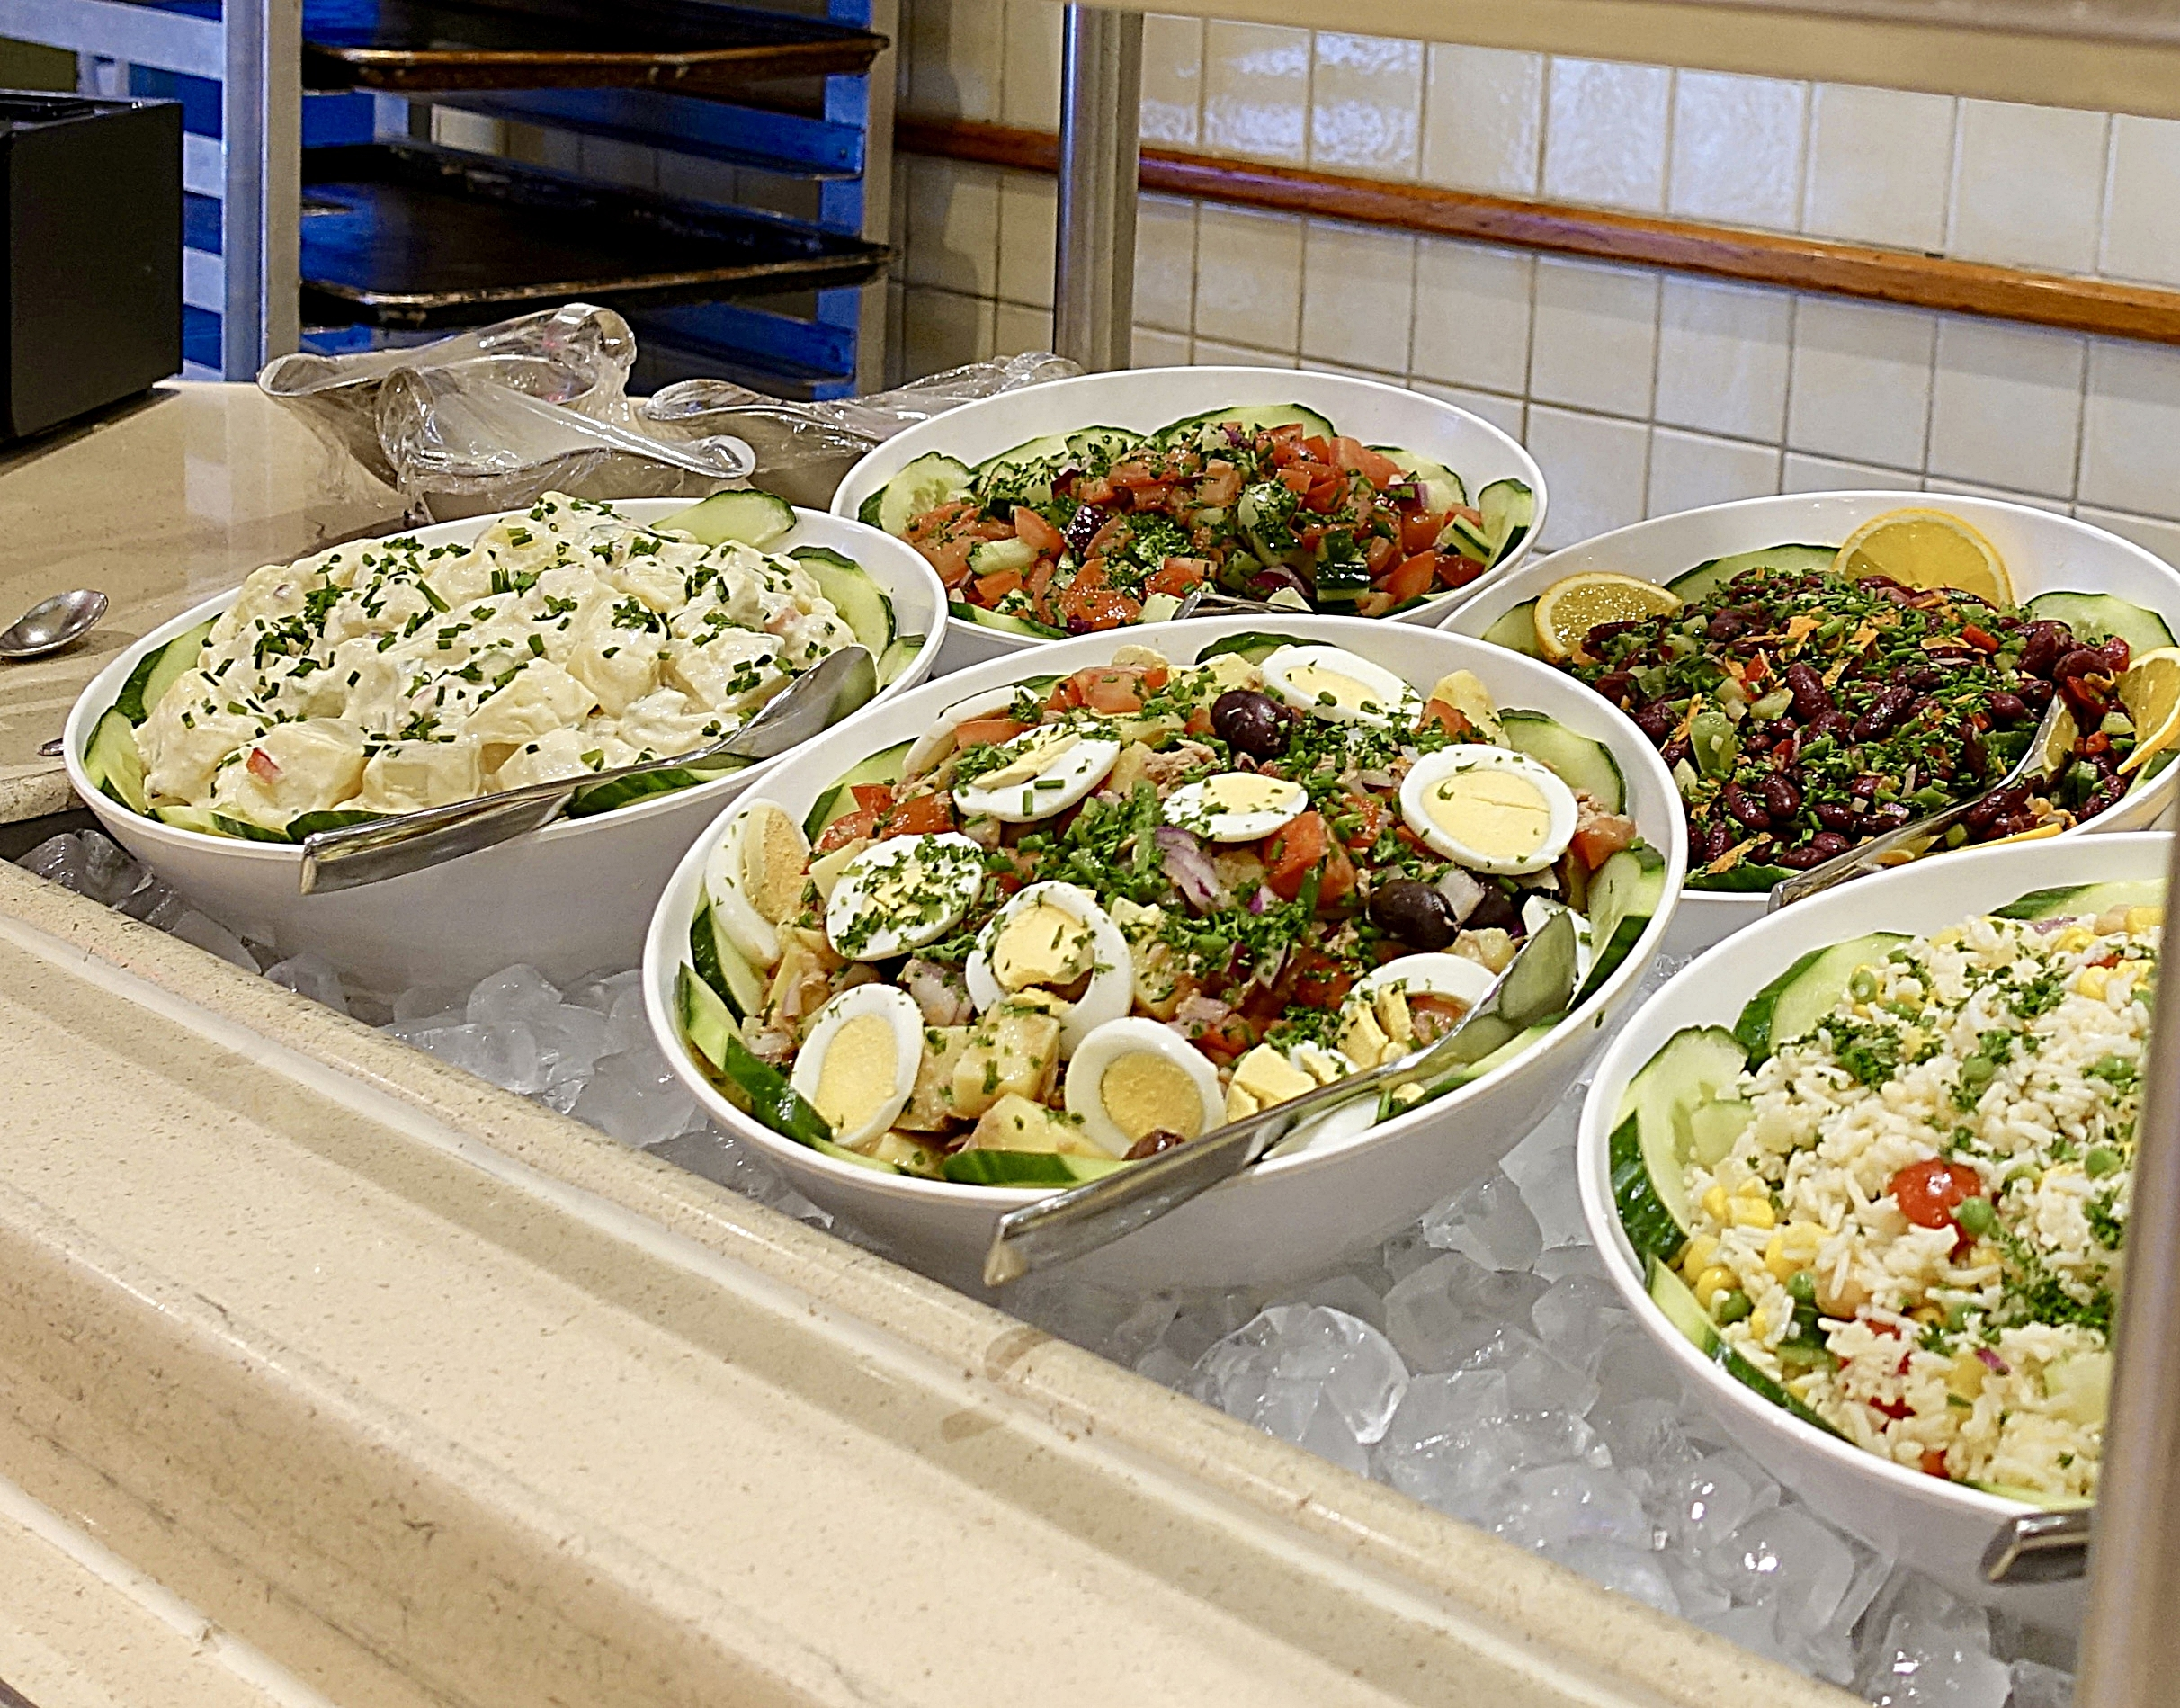 Some very delicious salads, my favourite part of any buffet, yum!